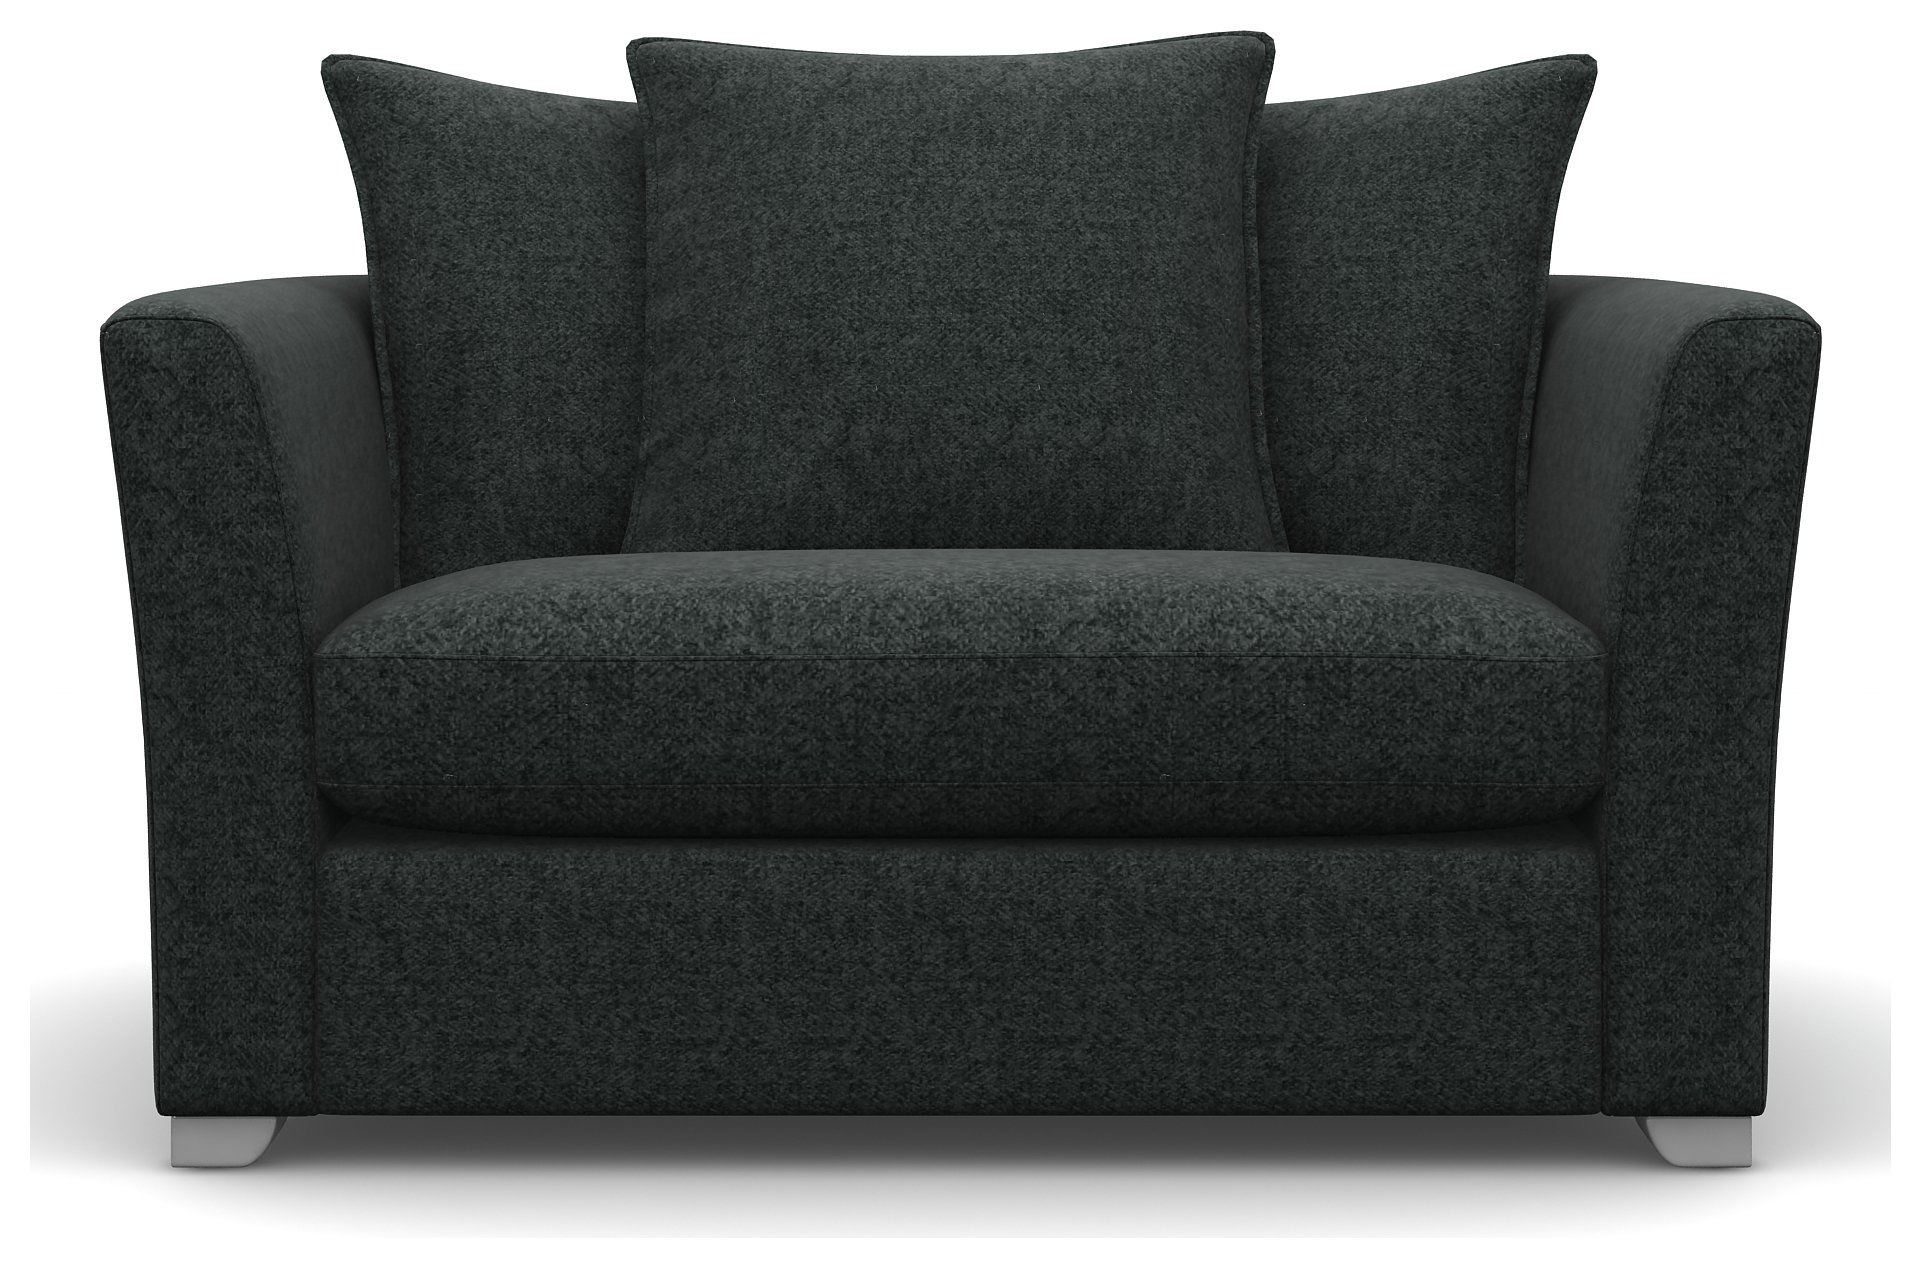 Heart of House Libby Tweed Fabric Cuddle Chair - Charcoal + White Legs